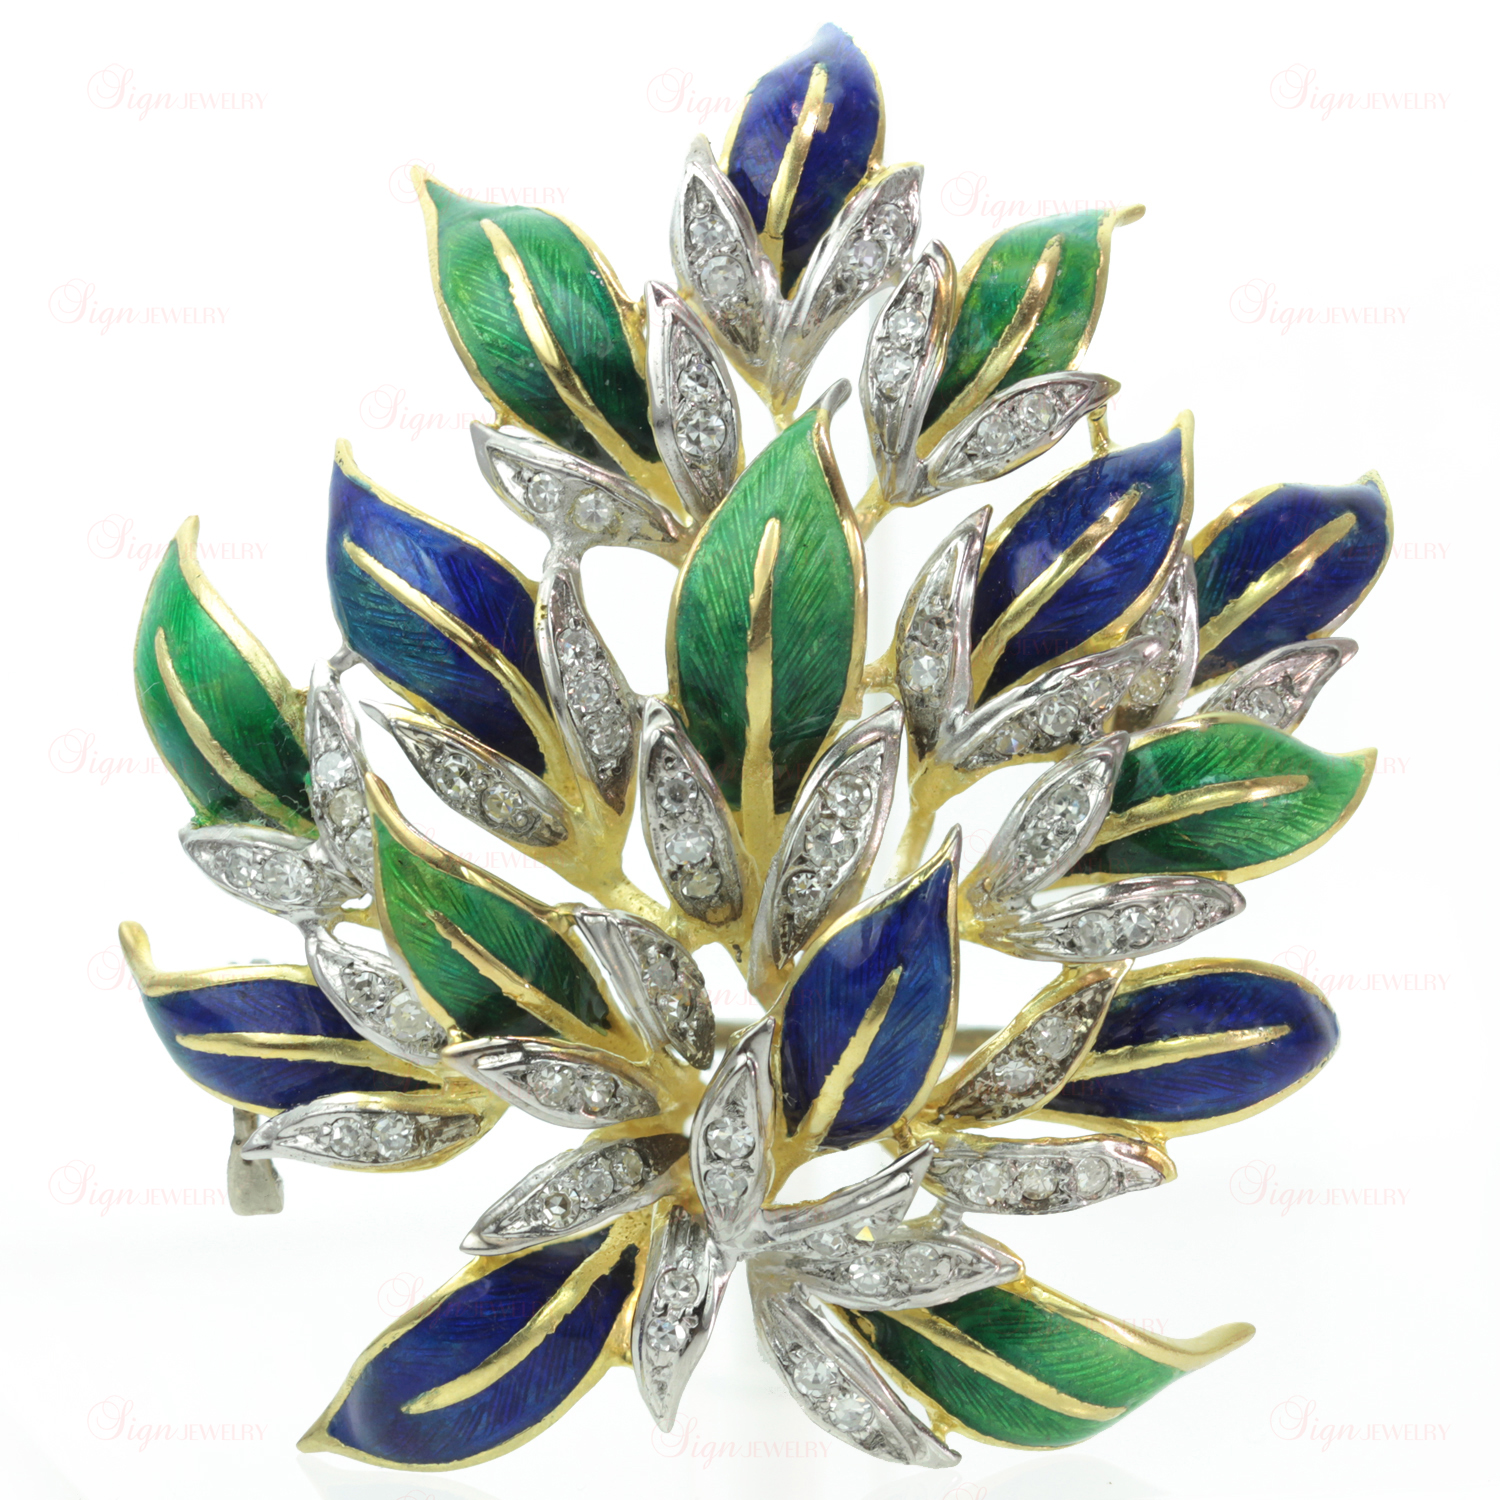 Vintage 18k Gold Blue & Green Enamel Diamond Floral Cluster Brooch